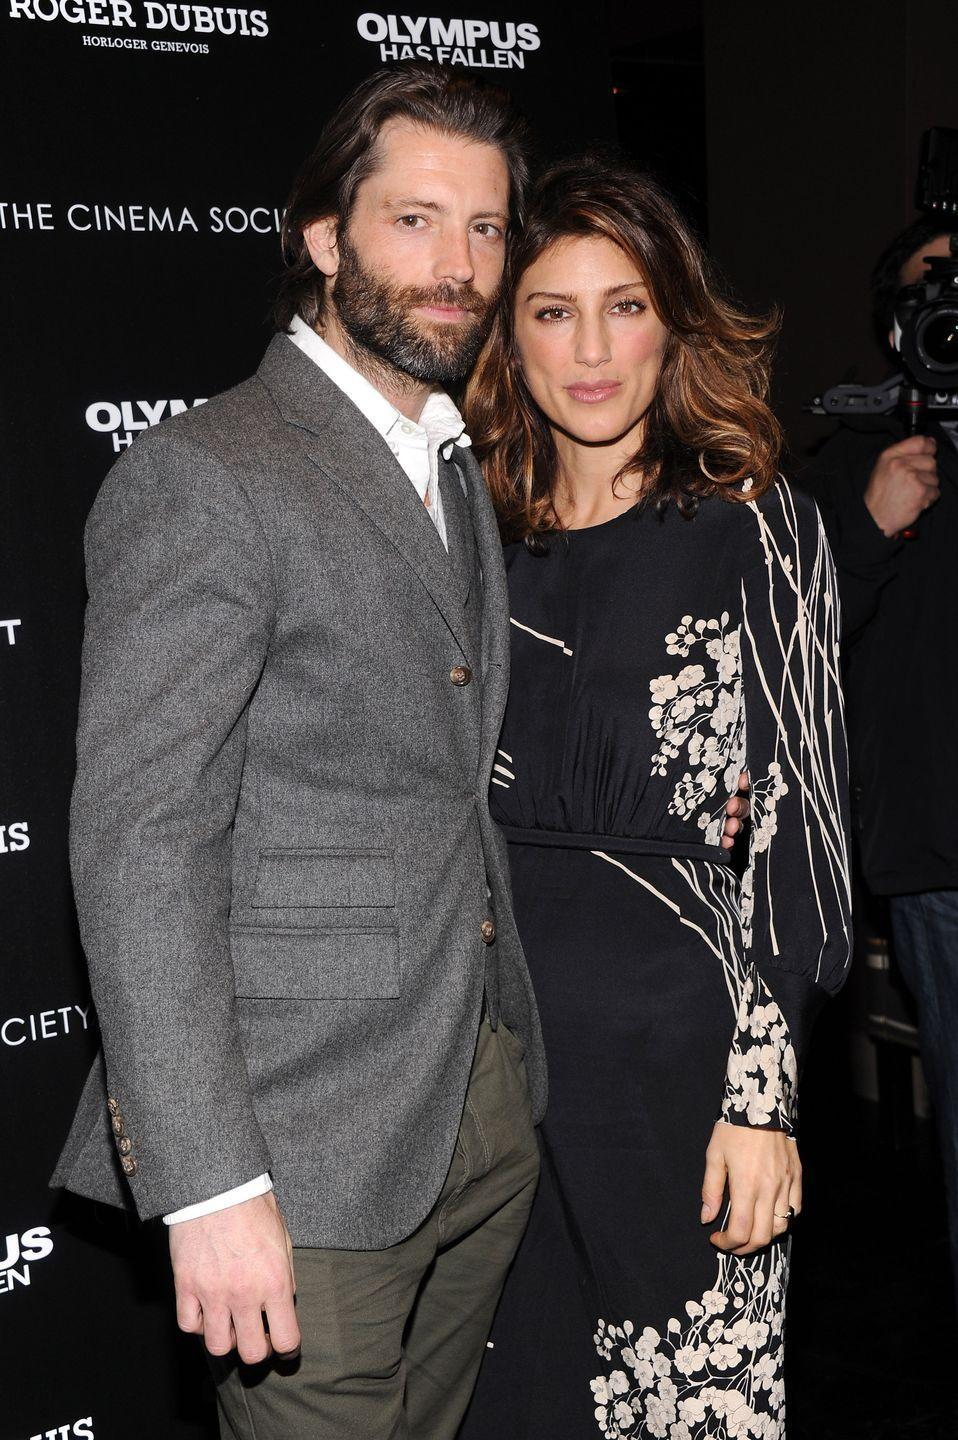 <p>There's something about actress Jennifer Esposito and her model husband's eyes that feel all too similar. Doesn't it seem like both of them are starring straight into your soul in this picture?</p>